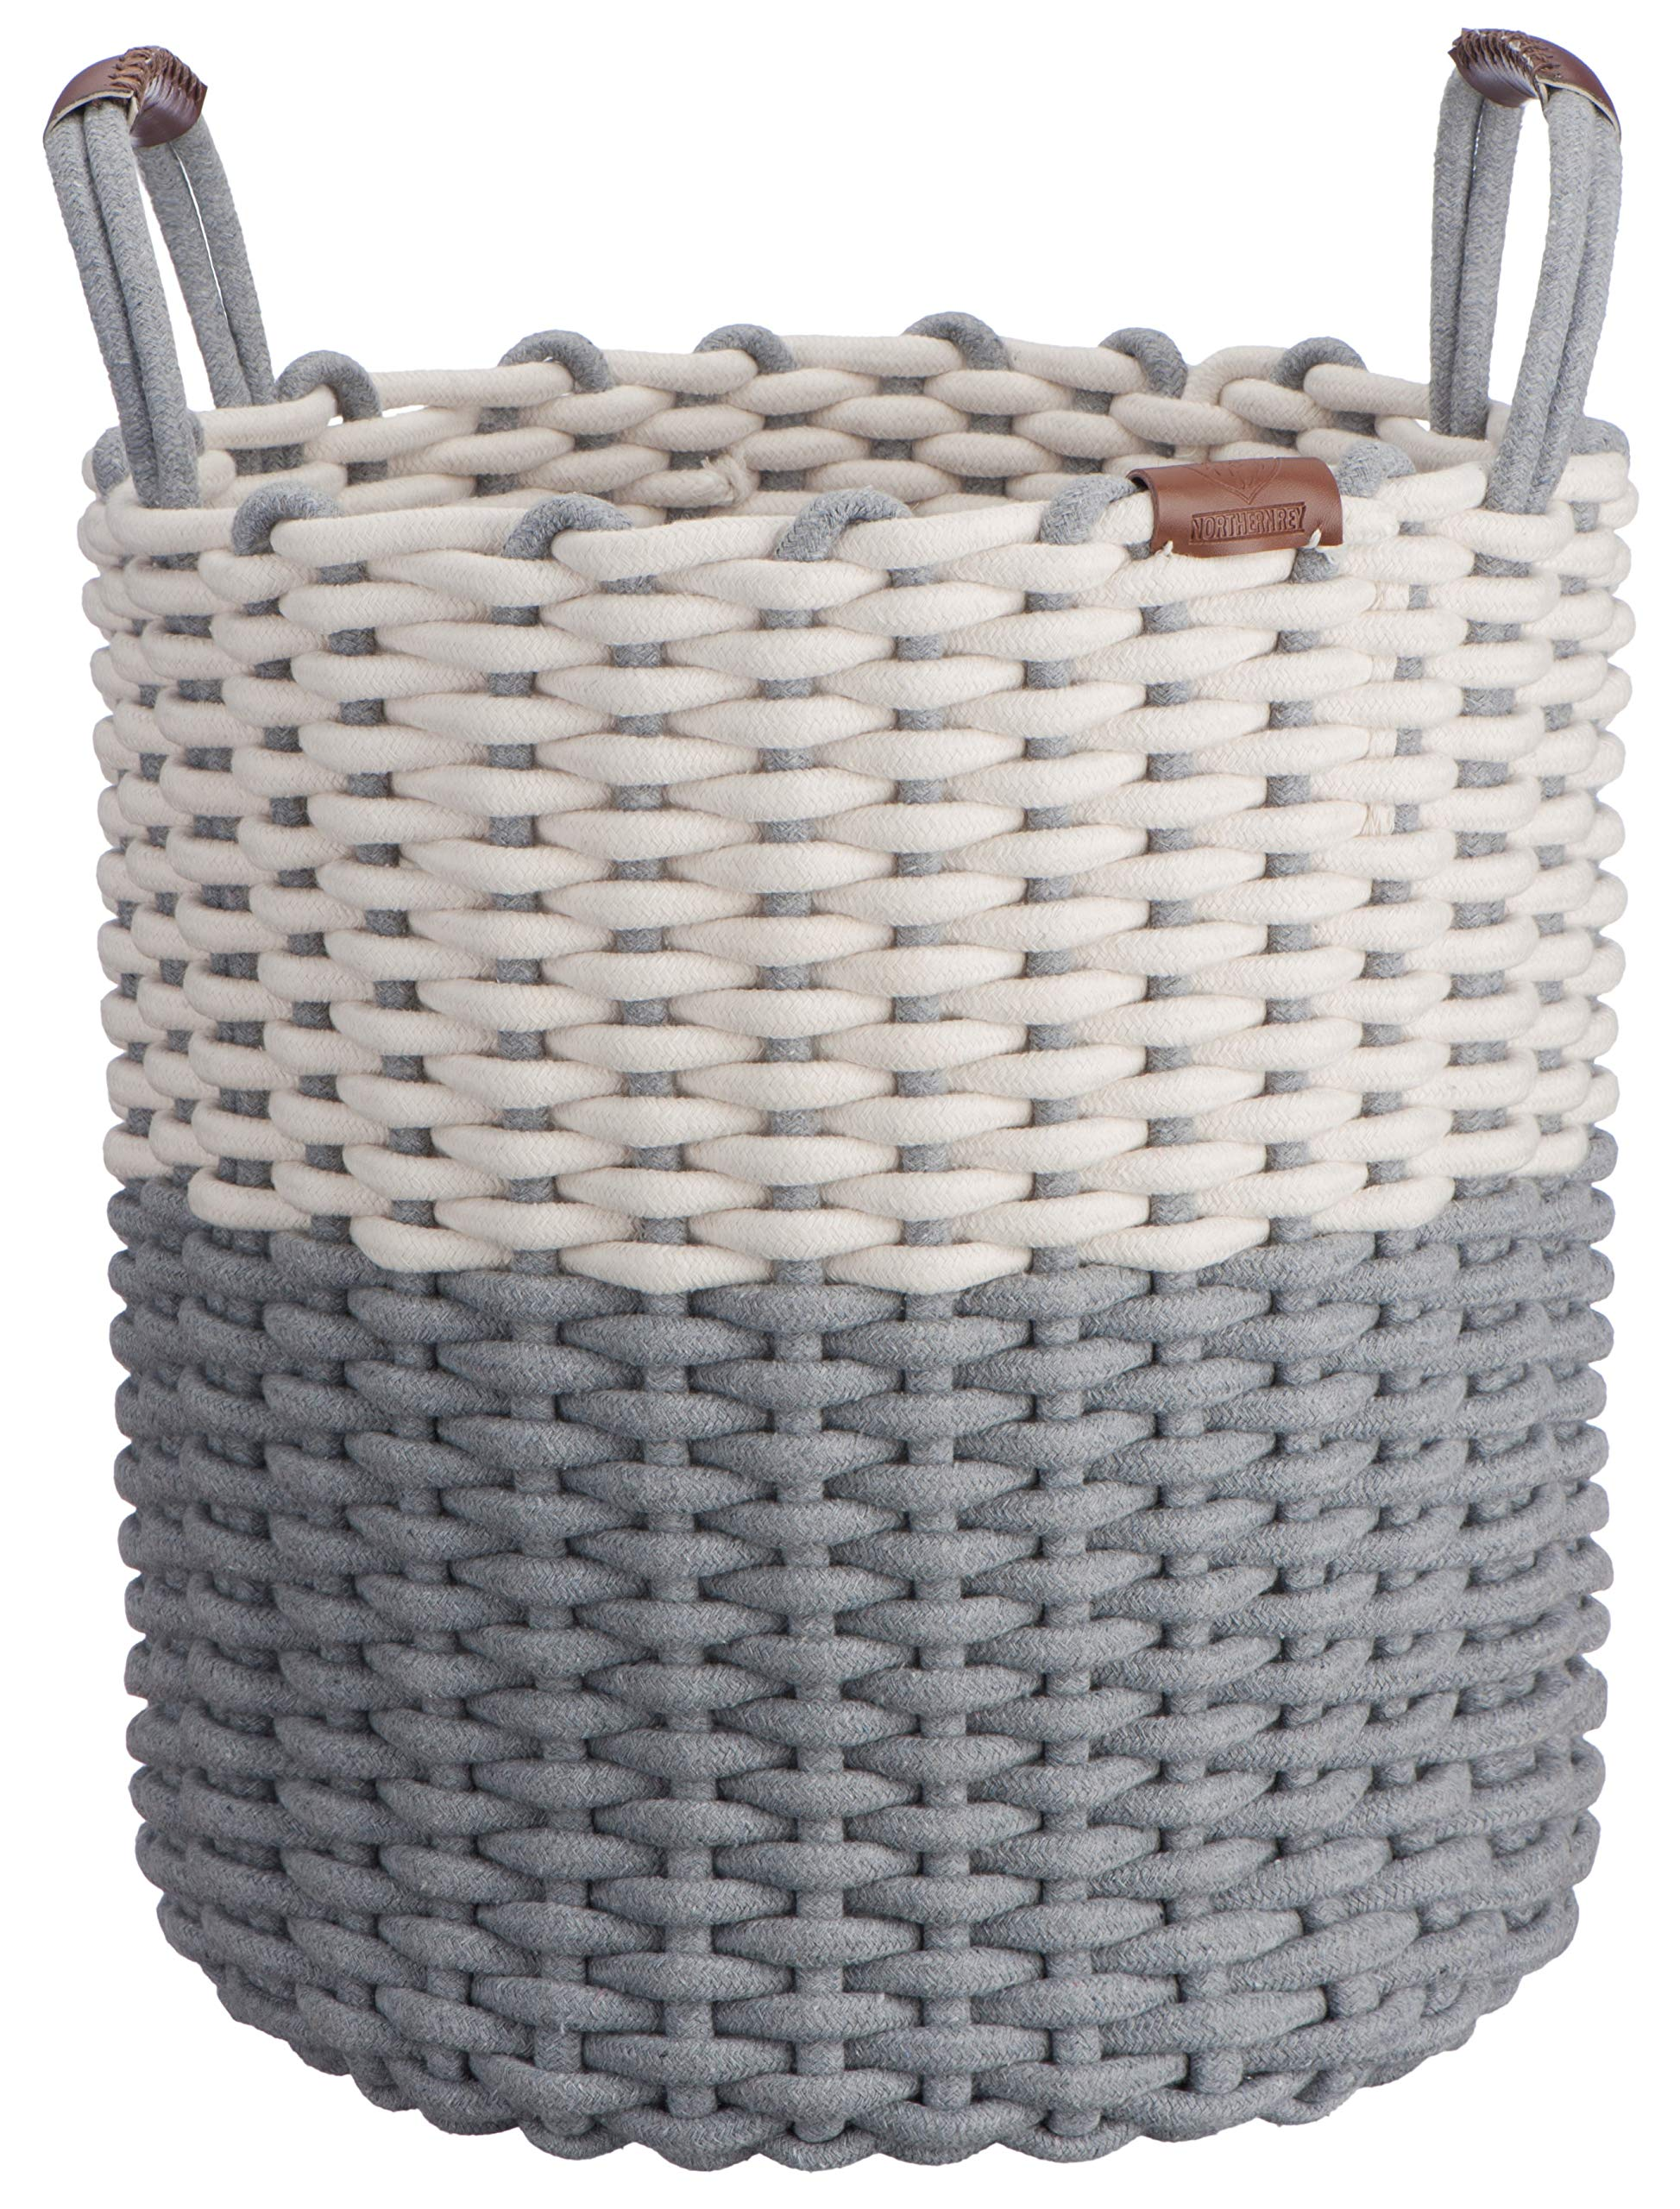 Northern Rey Cotton Rope Basket - Large, Handmade with Handles - Circular Basket for Kids Toys, Blanket, Pillows, Throws, Laundry Organizer, Hamper, Storage Bin Basket, Chic Grey - 17 x 14.7 Inches by Northern Rey